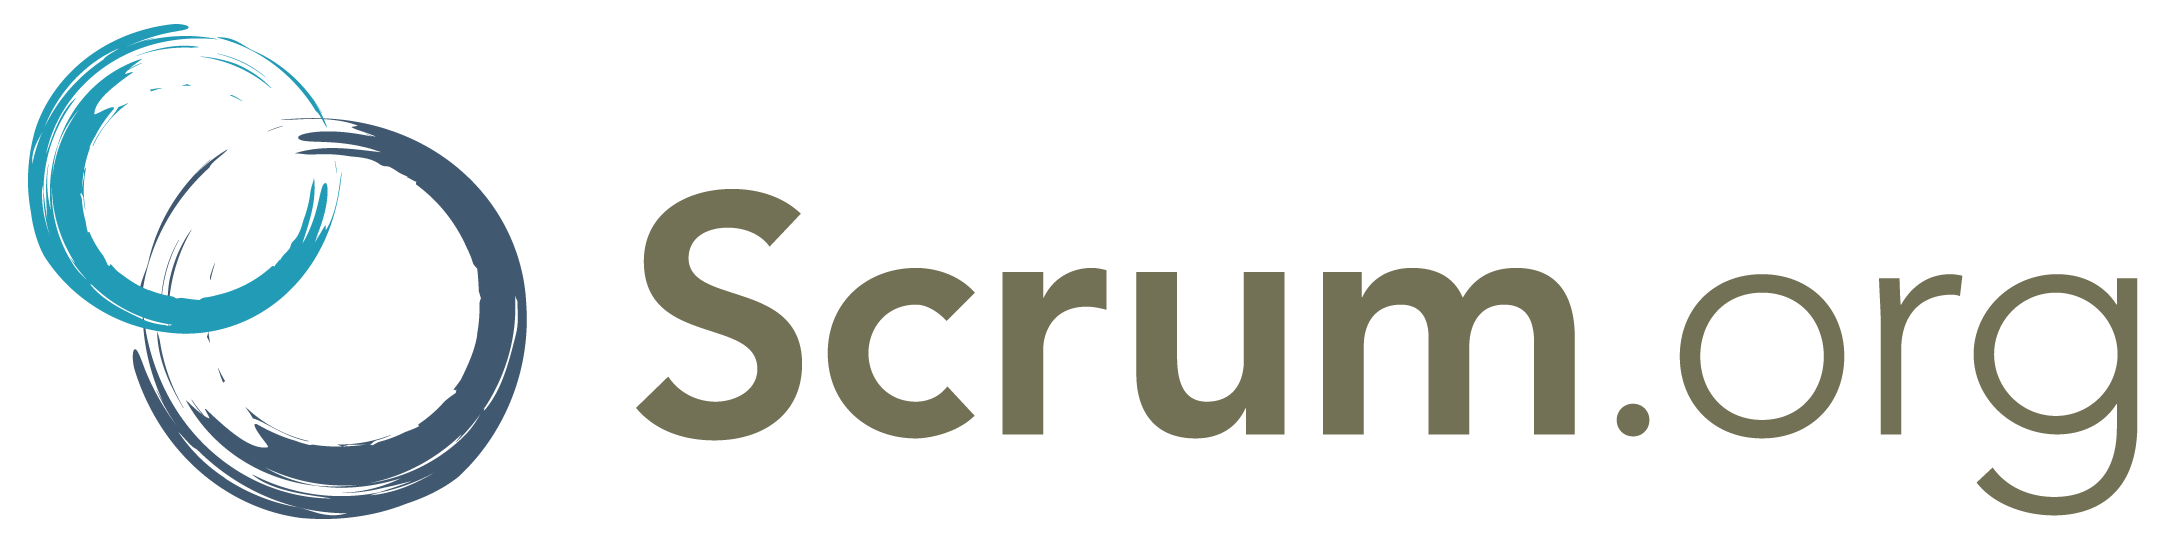 Scrum.org-Logo_no_tagline_transparent.png